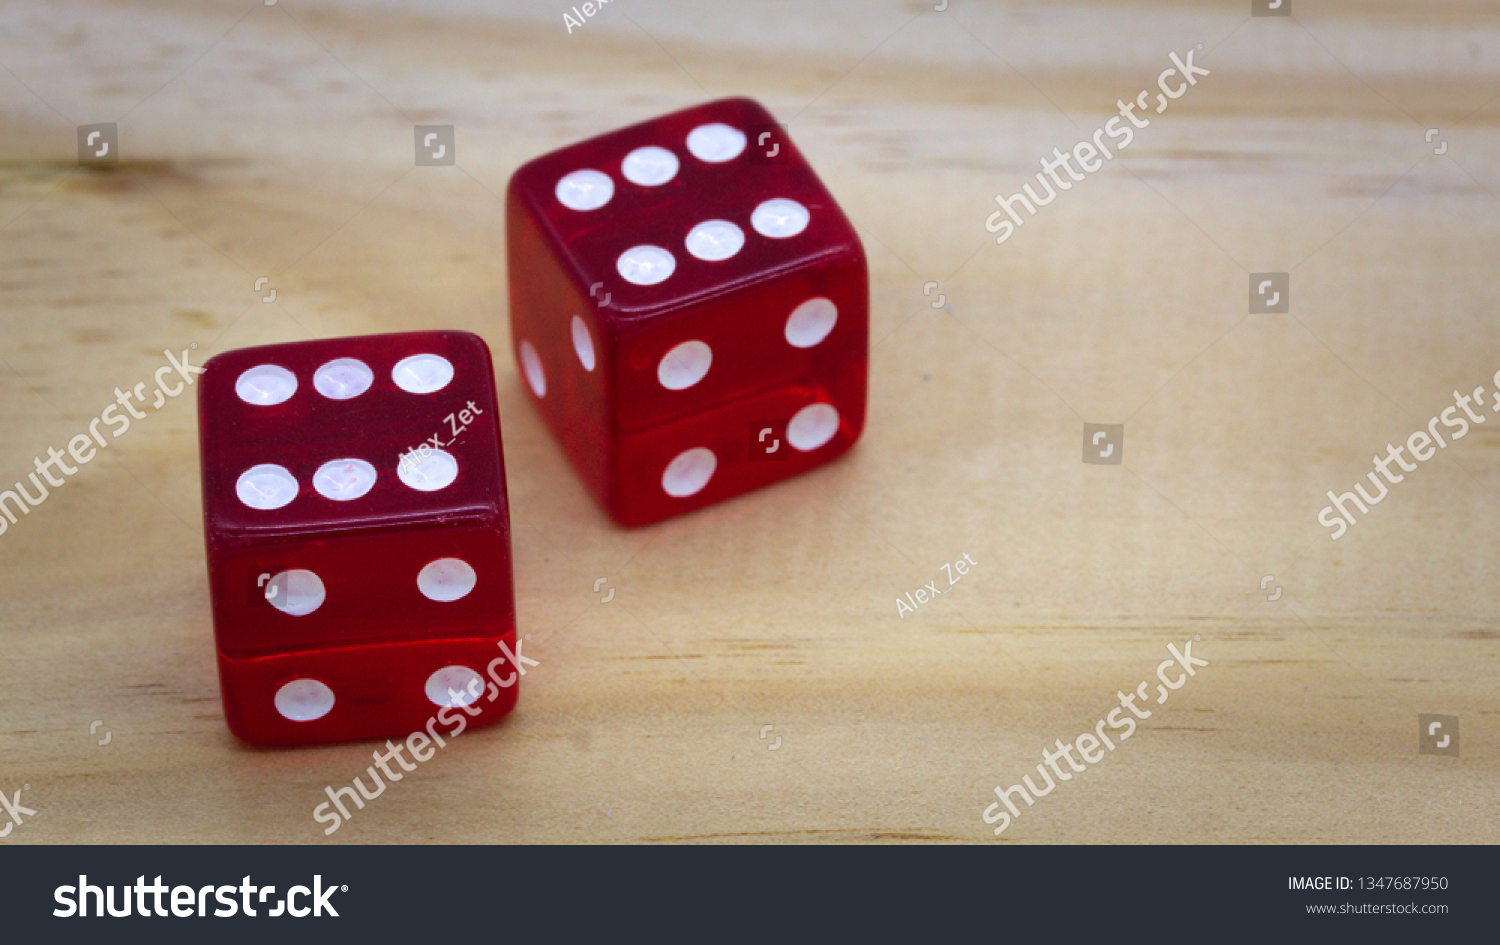 Red dice isolated on a white background #1347687950